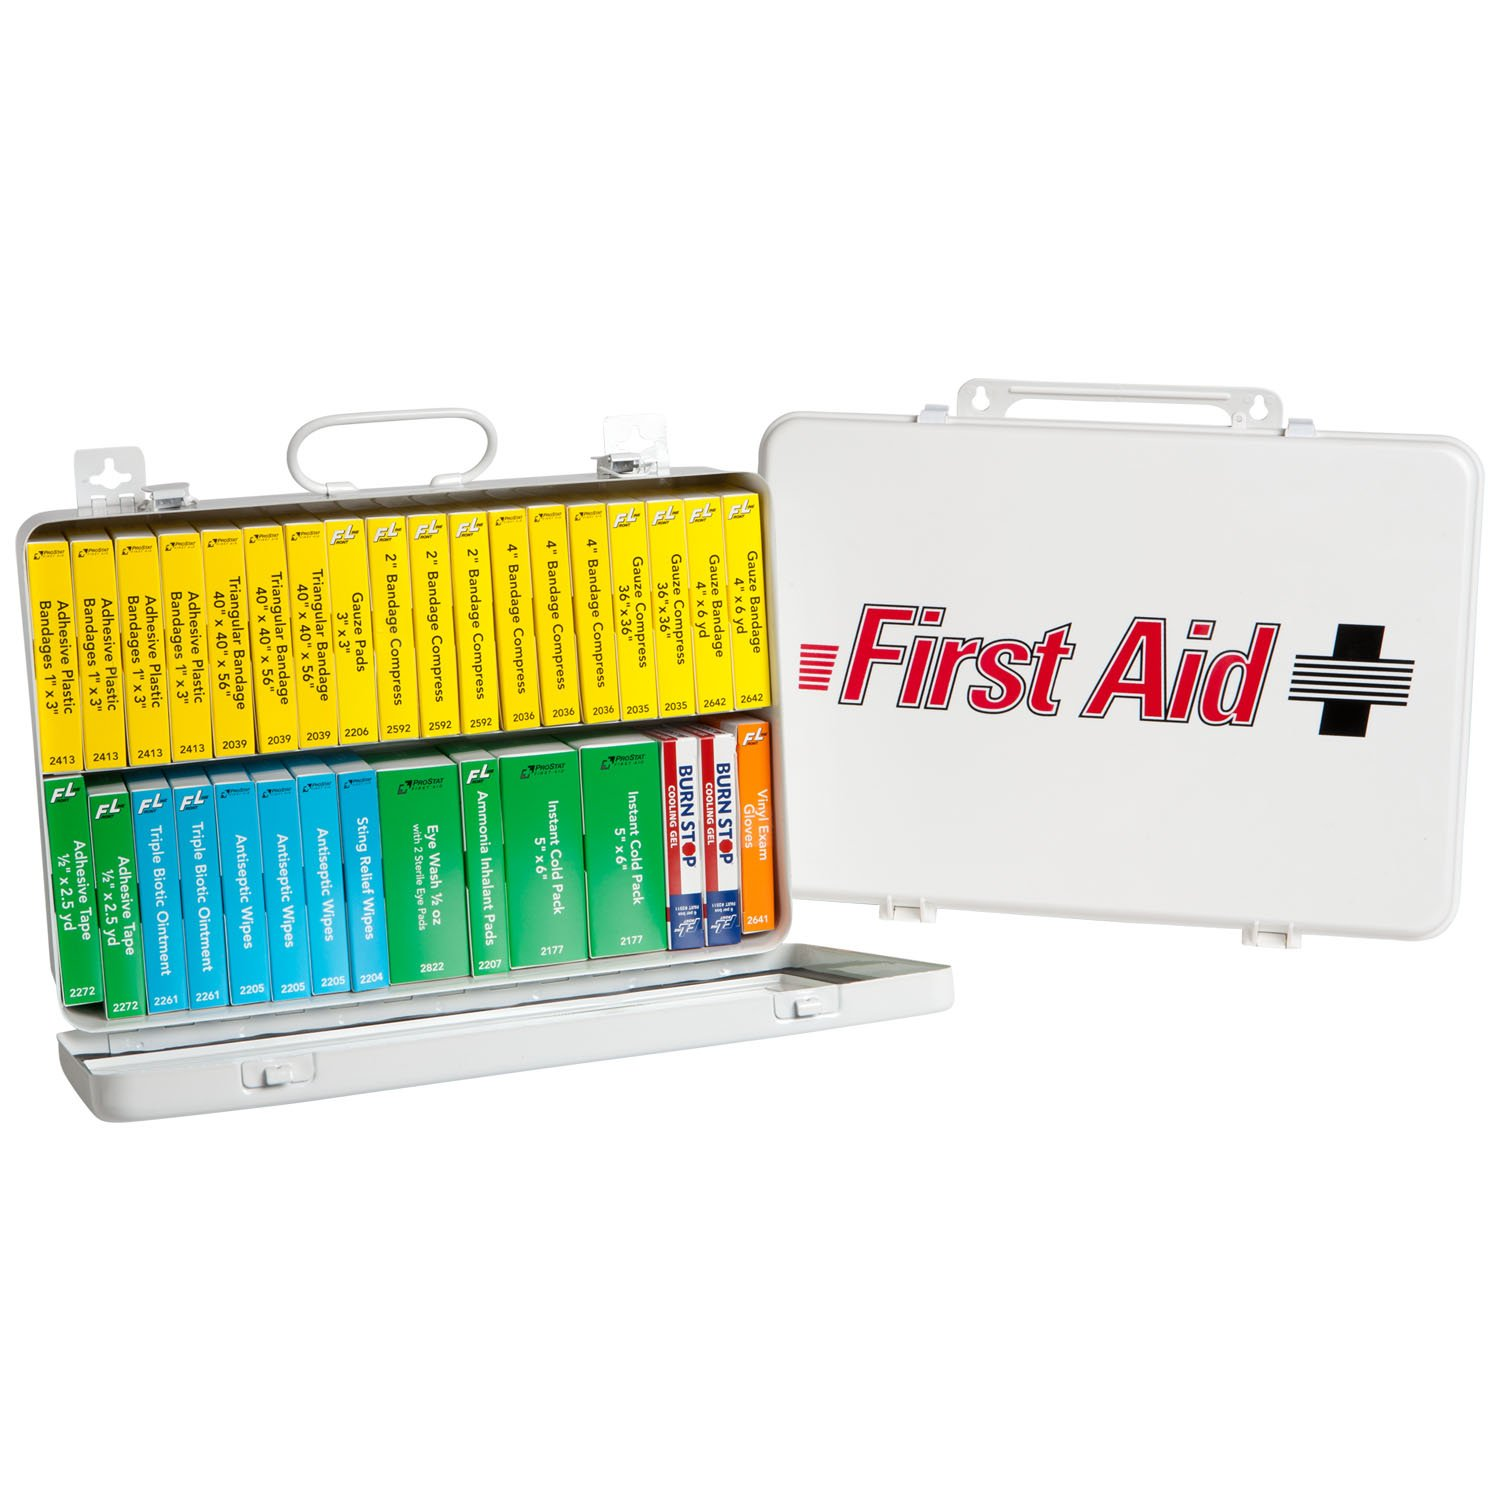 ProStat First Aid 0909 194 Piece 36 Unit ANSI Compliant First Aid Kit with Steel Case kitcox70427fao4001 value kit first aid only inc alcohol cleansing pads fao4001 and glad forceflex tall kitchen drawstring bags cox70427